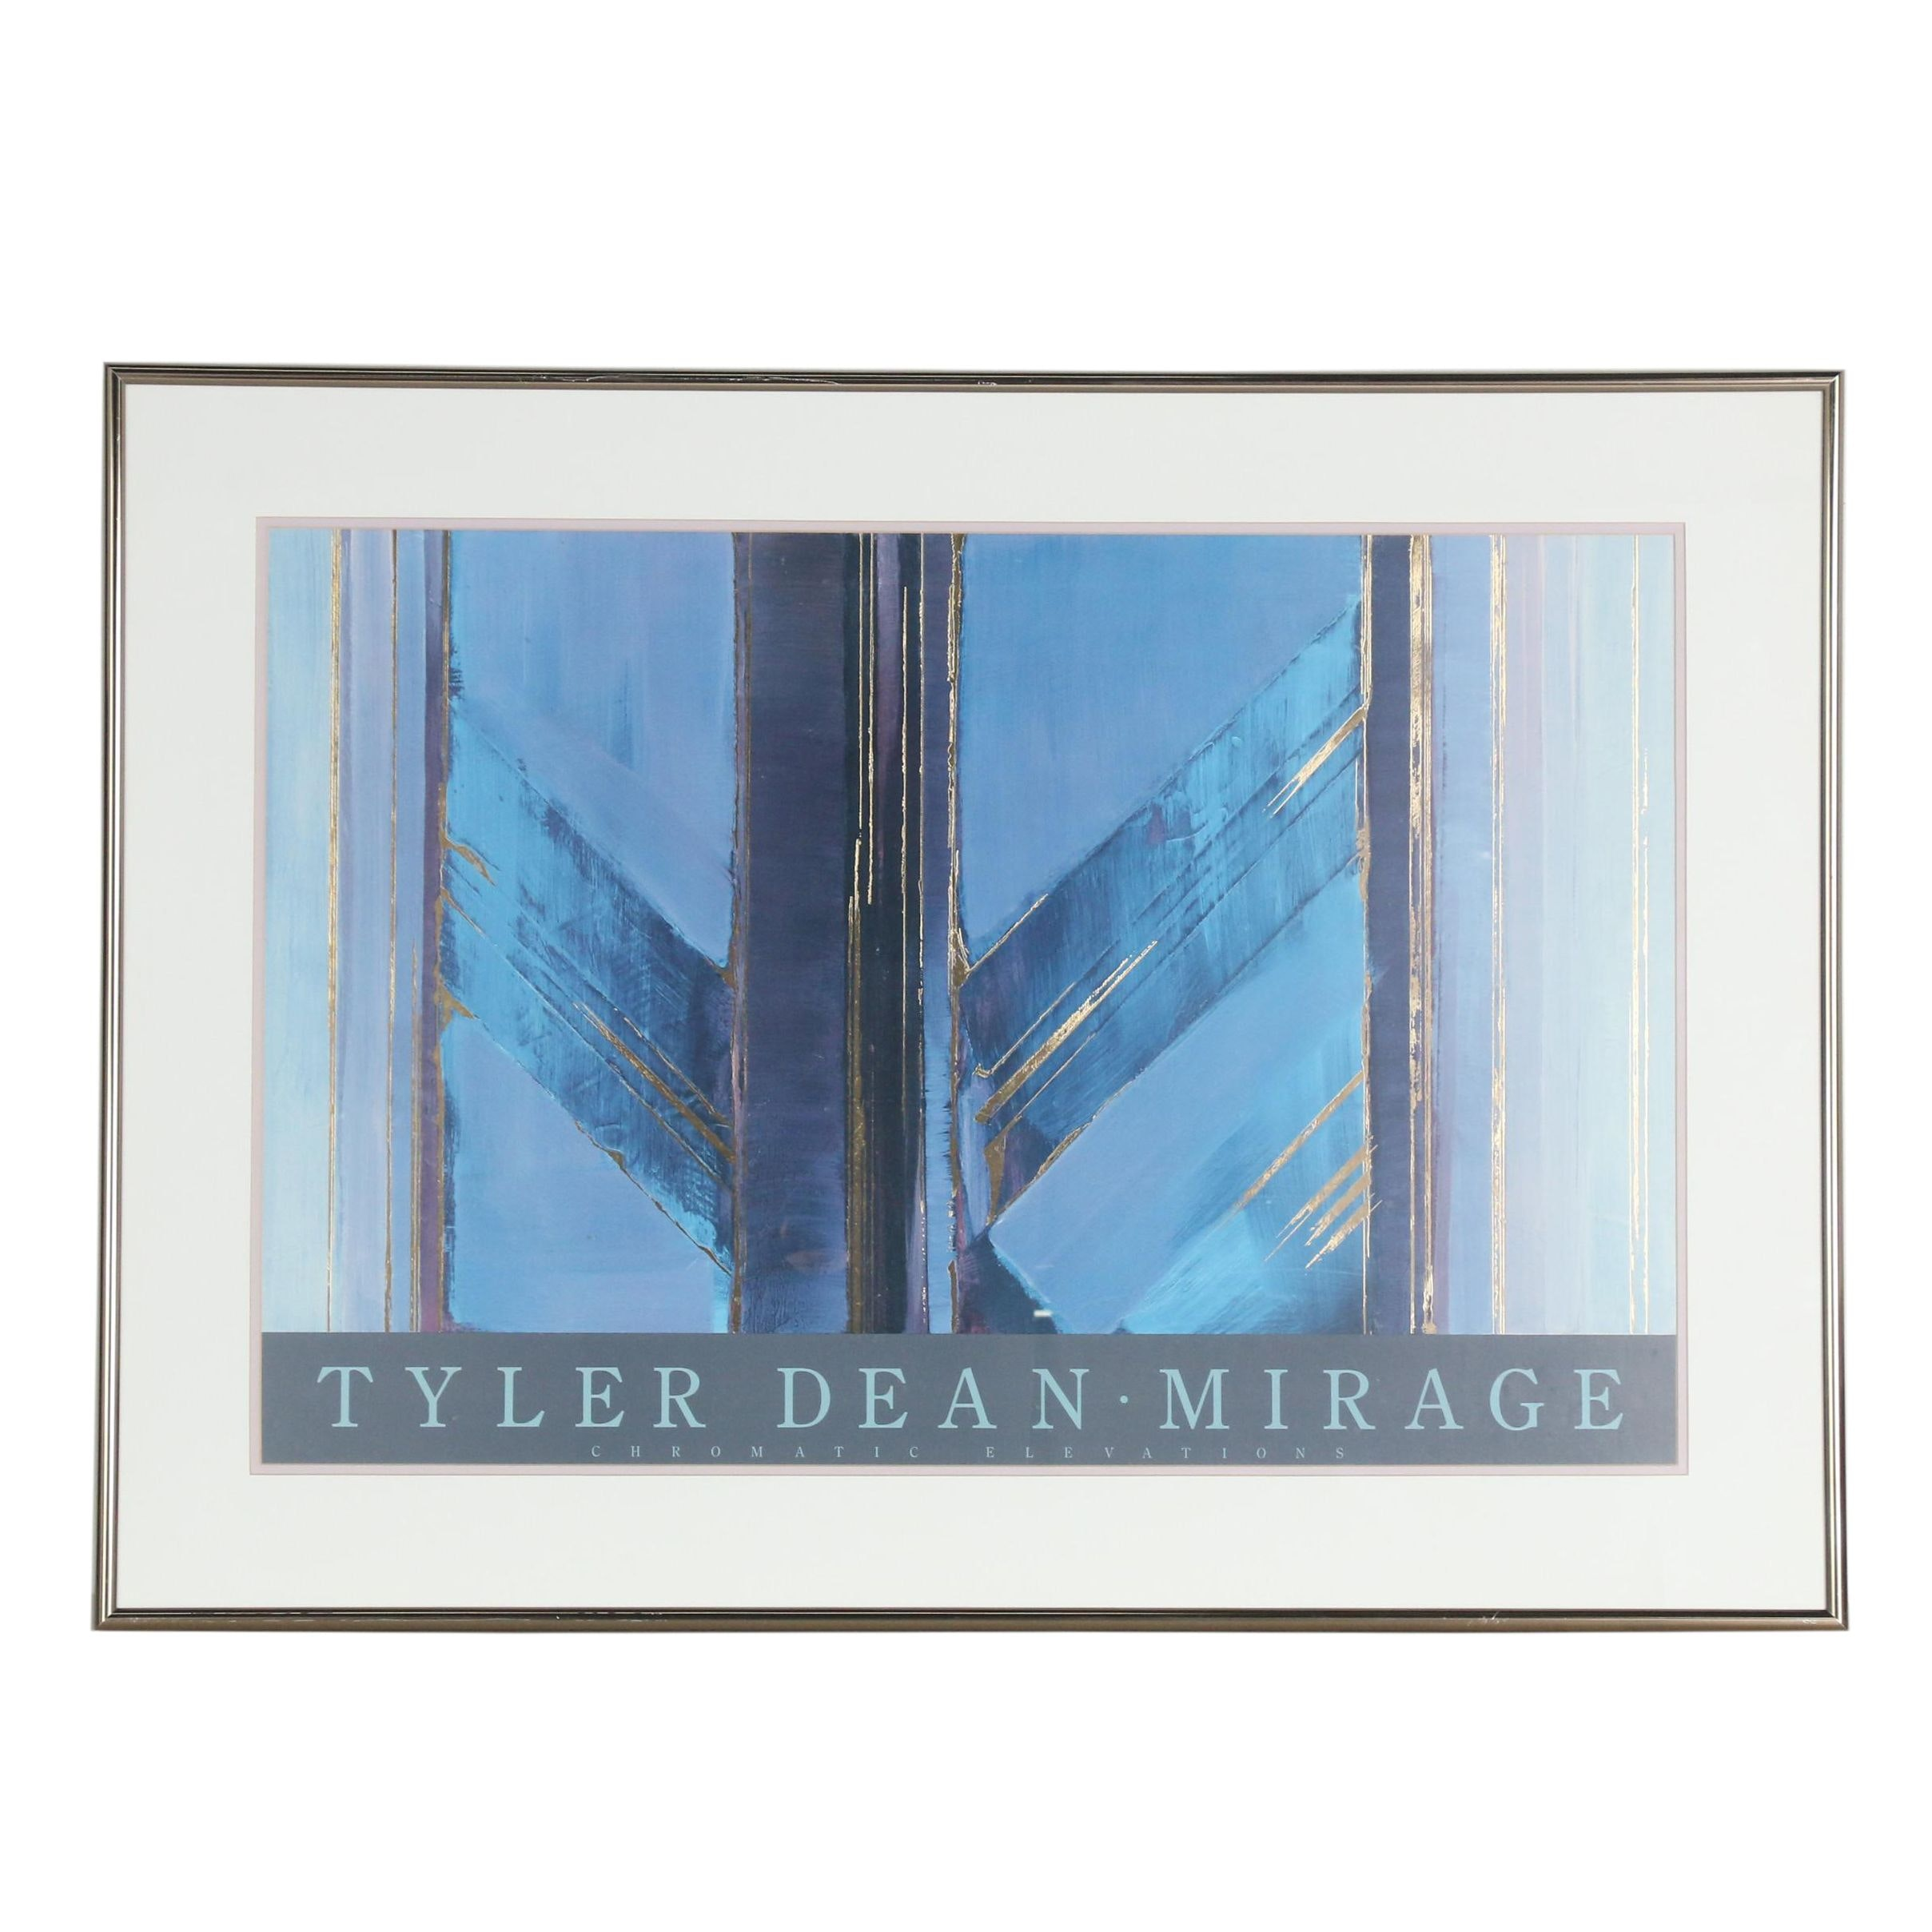 """Offset Lithograph Exhibition Poster after Tyler Dean """"Chromatic Elevations"""""""